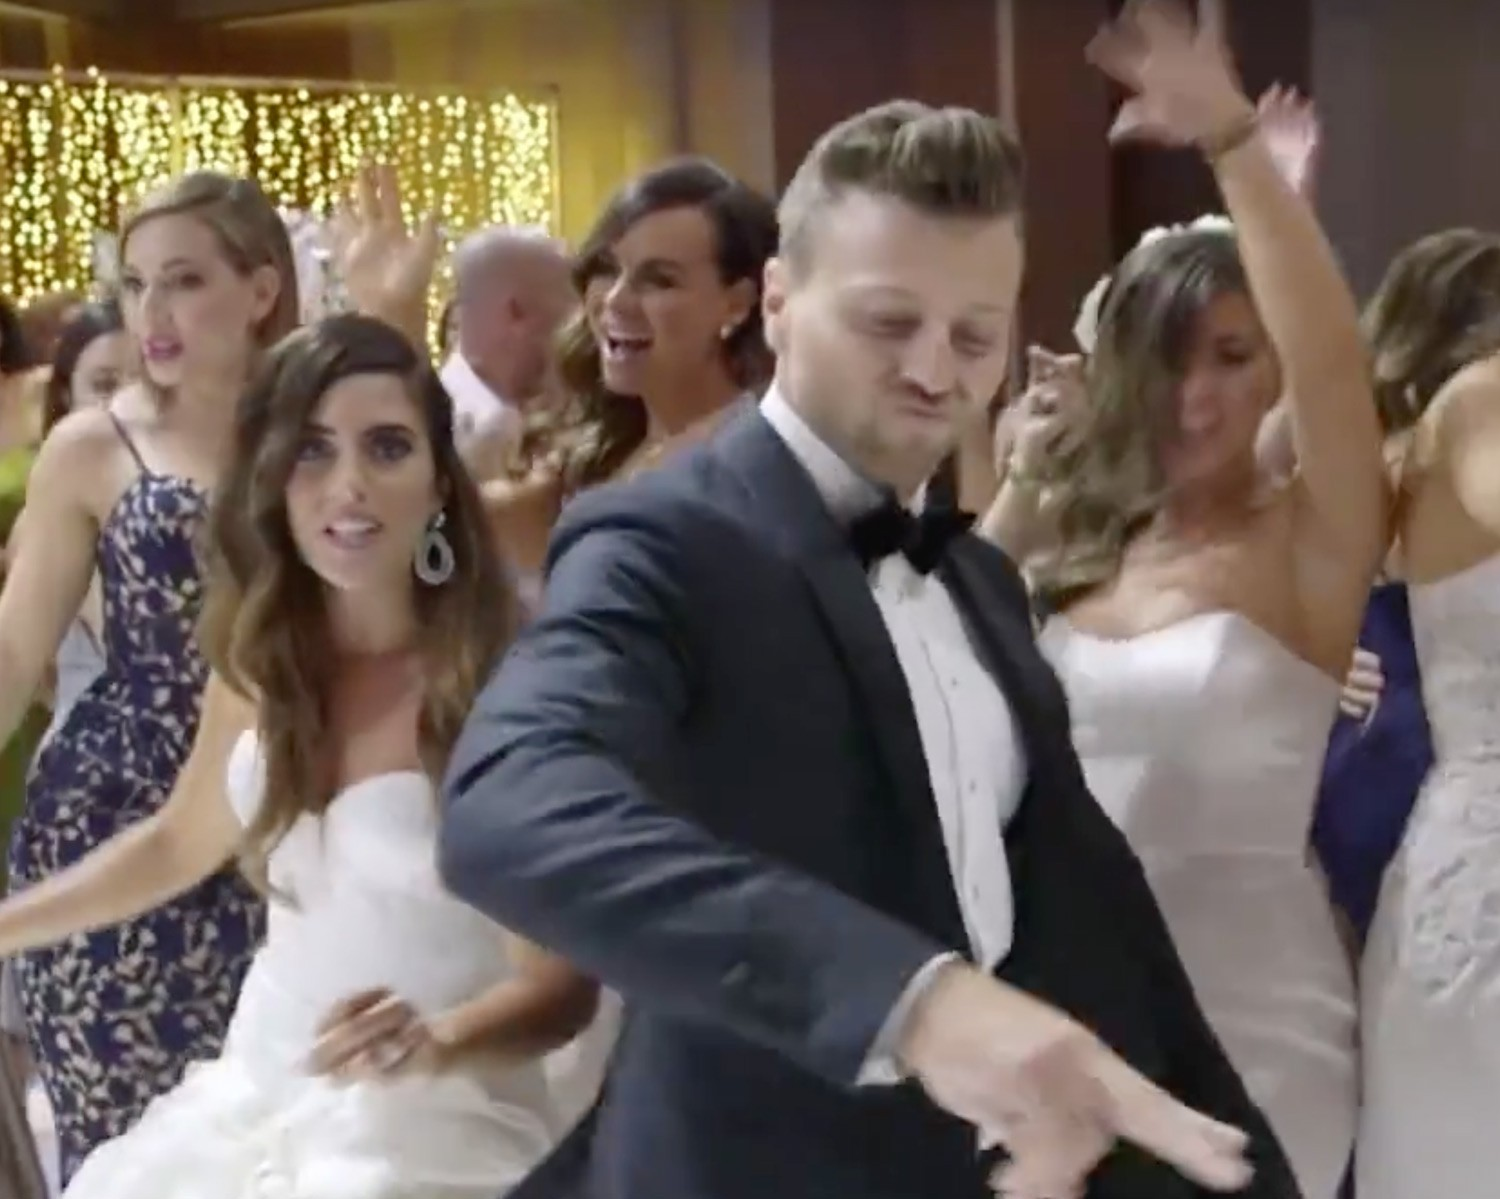 Bride and Groom's wedding music video by Dancing With the Stars